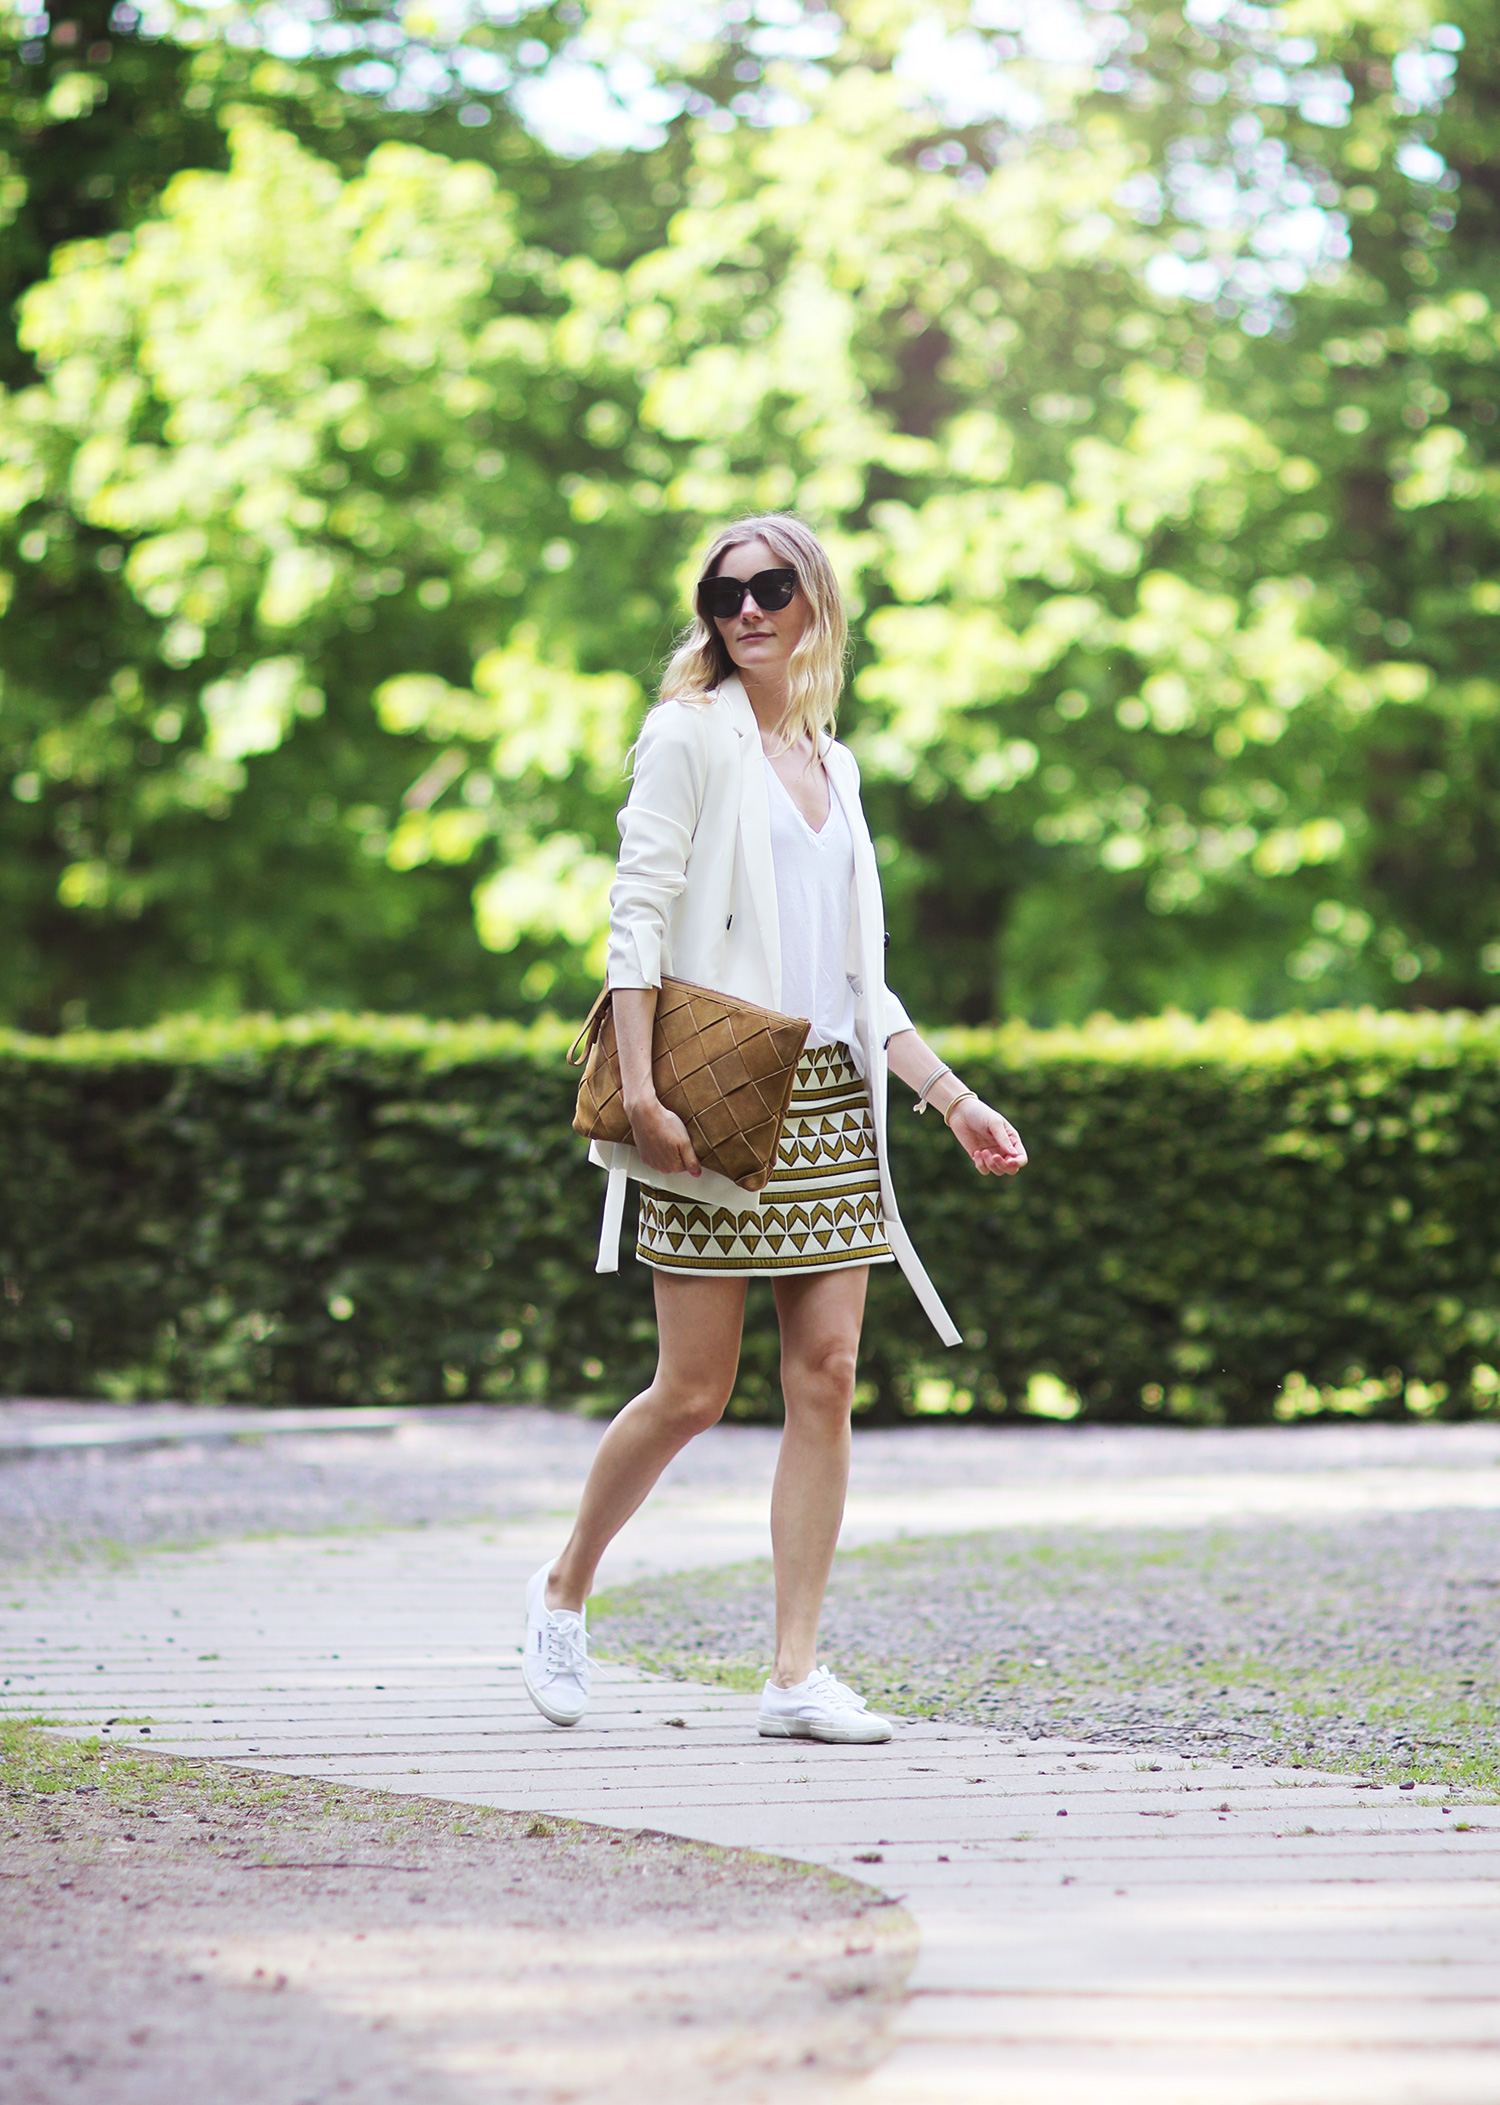 modeblog,-nederdel,-fashion-blog@2x